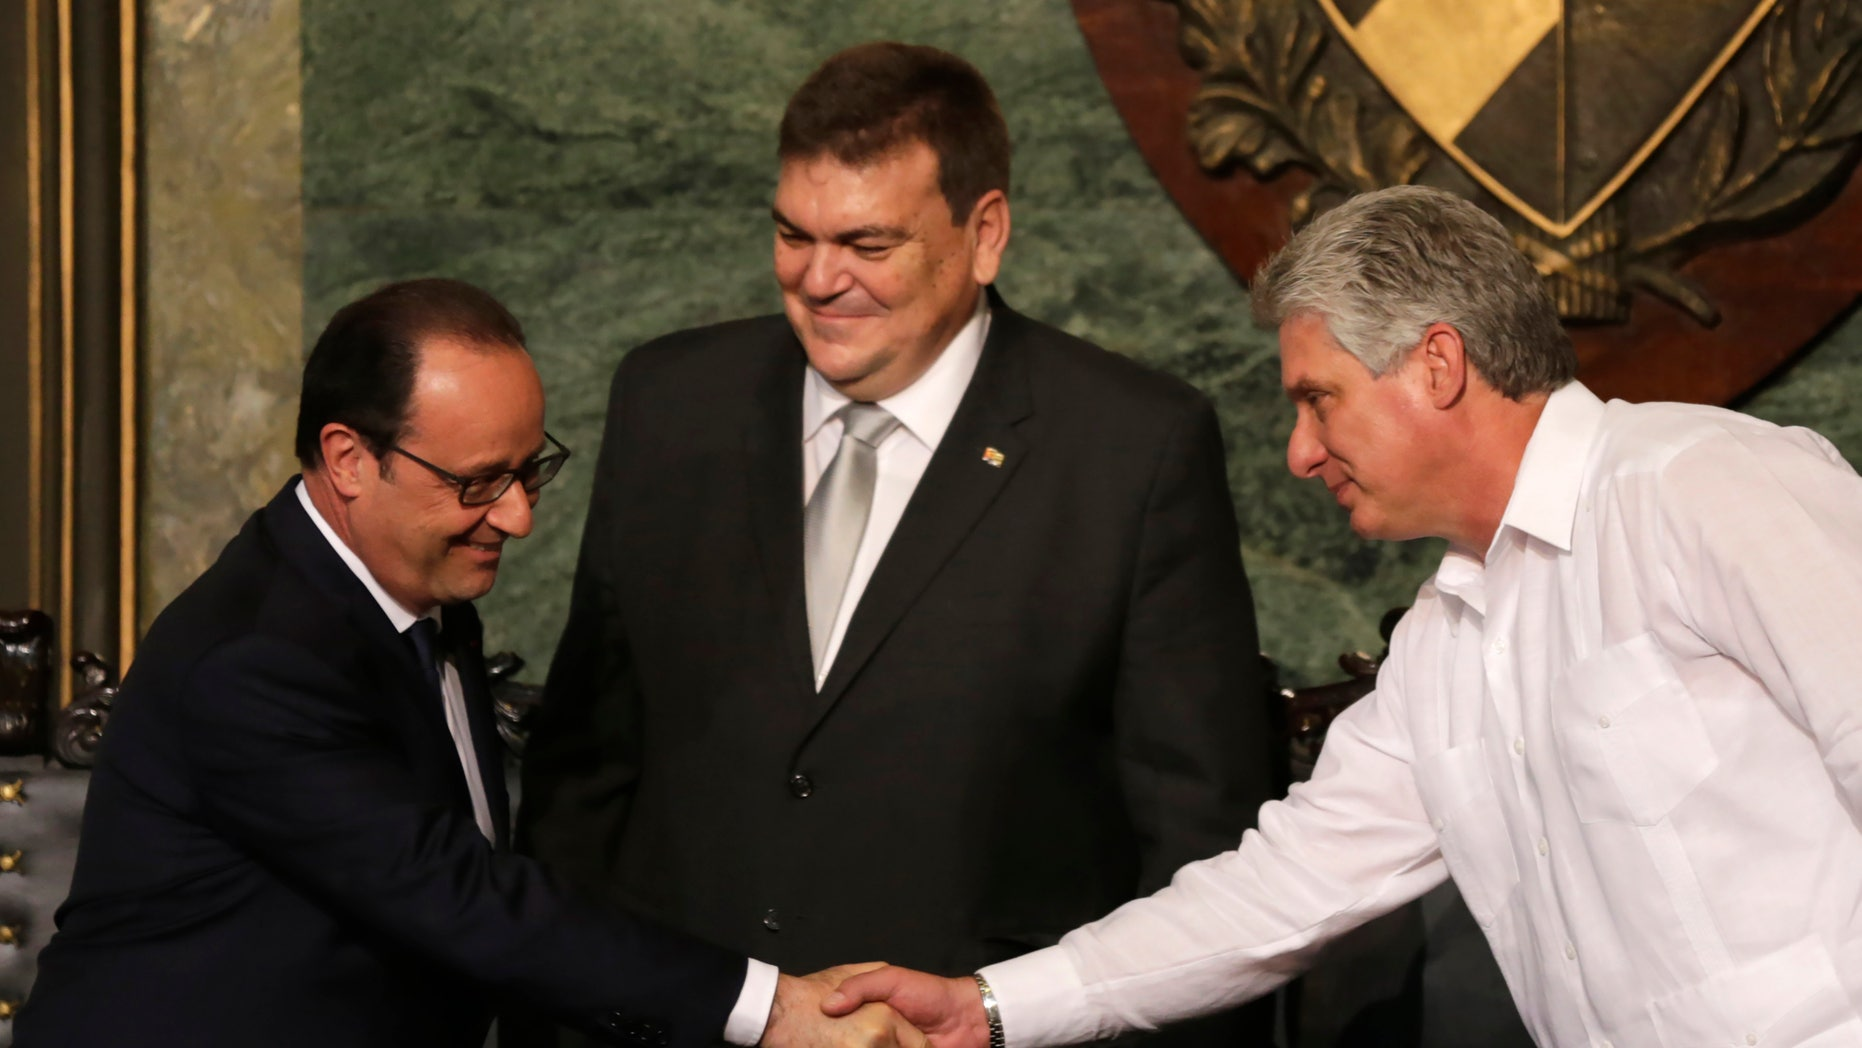 French President Francois Hollande shakes hands with Cuba's Vice President Miguel Diaz-Canel, right, in front of Gustavo Cobreiro, University Havana rector, in Havana, Cuba, Monday, May 11, 2015. Accompanied by a group of top  French business people, Hollande has become the first French president to visit Cuba since it became an independent country, using a one-day trip to build business and diplomatic relations five months after a detente between Havana and Washington.(AP Photo/Desmond Boylan)